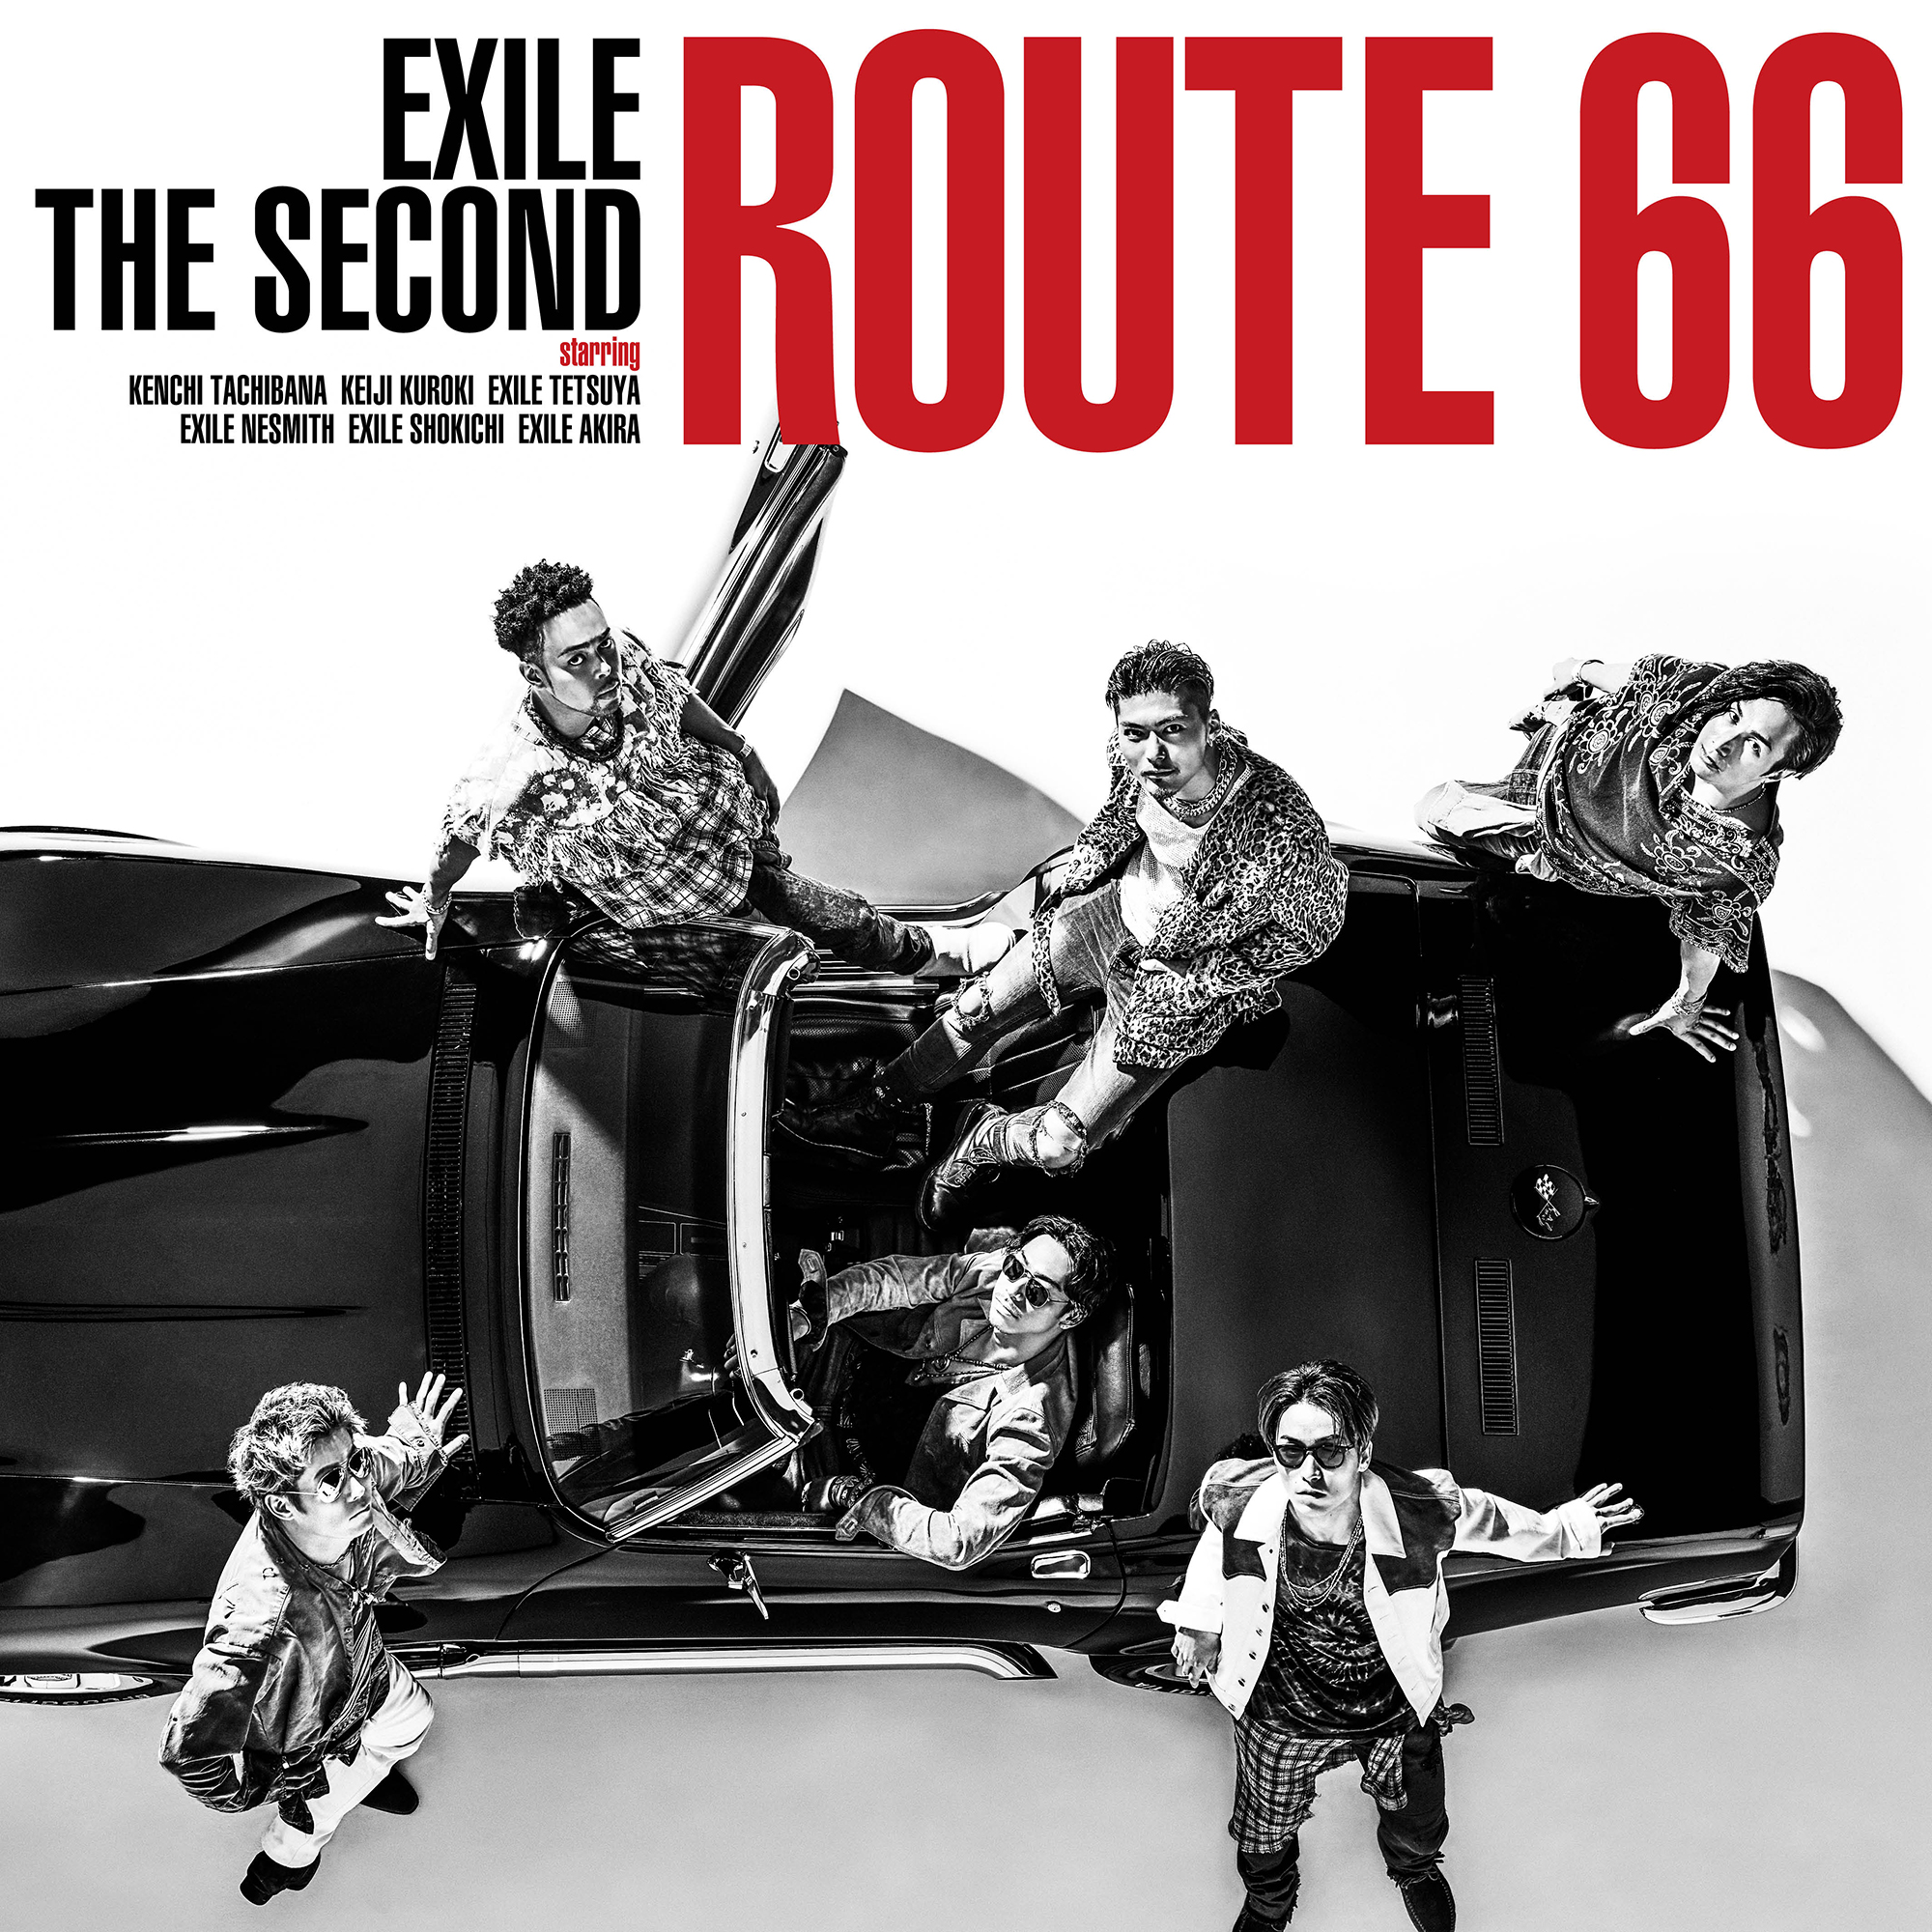 EXILE THE SECOND New Single『Route 66』CD+DVD